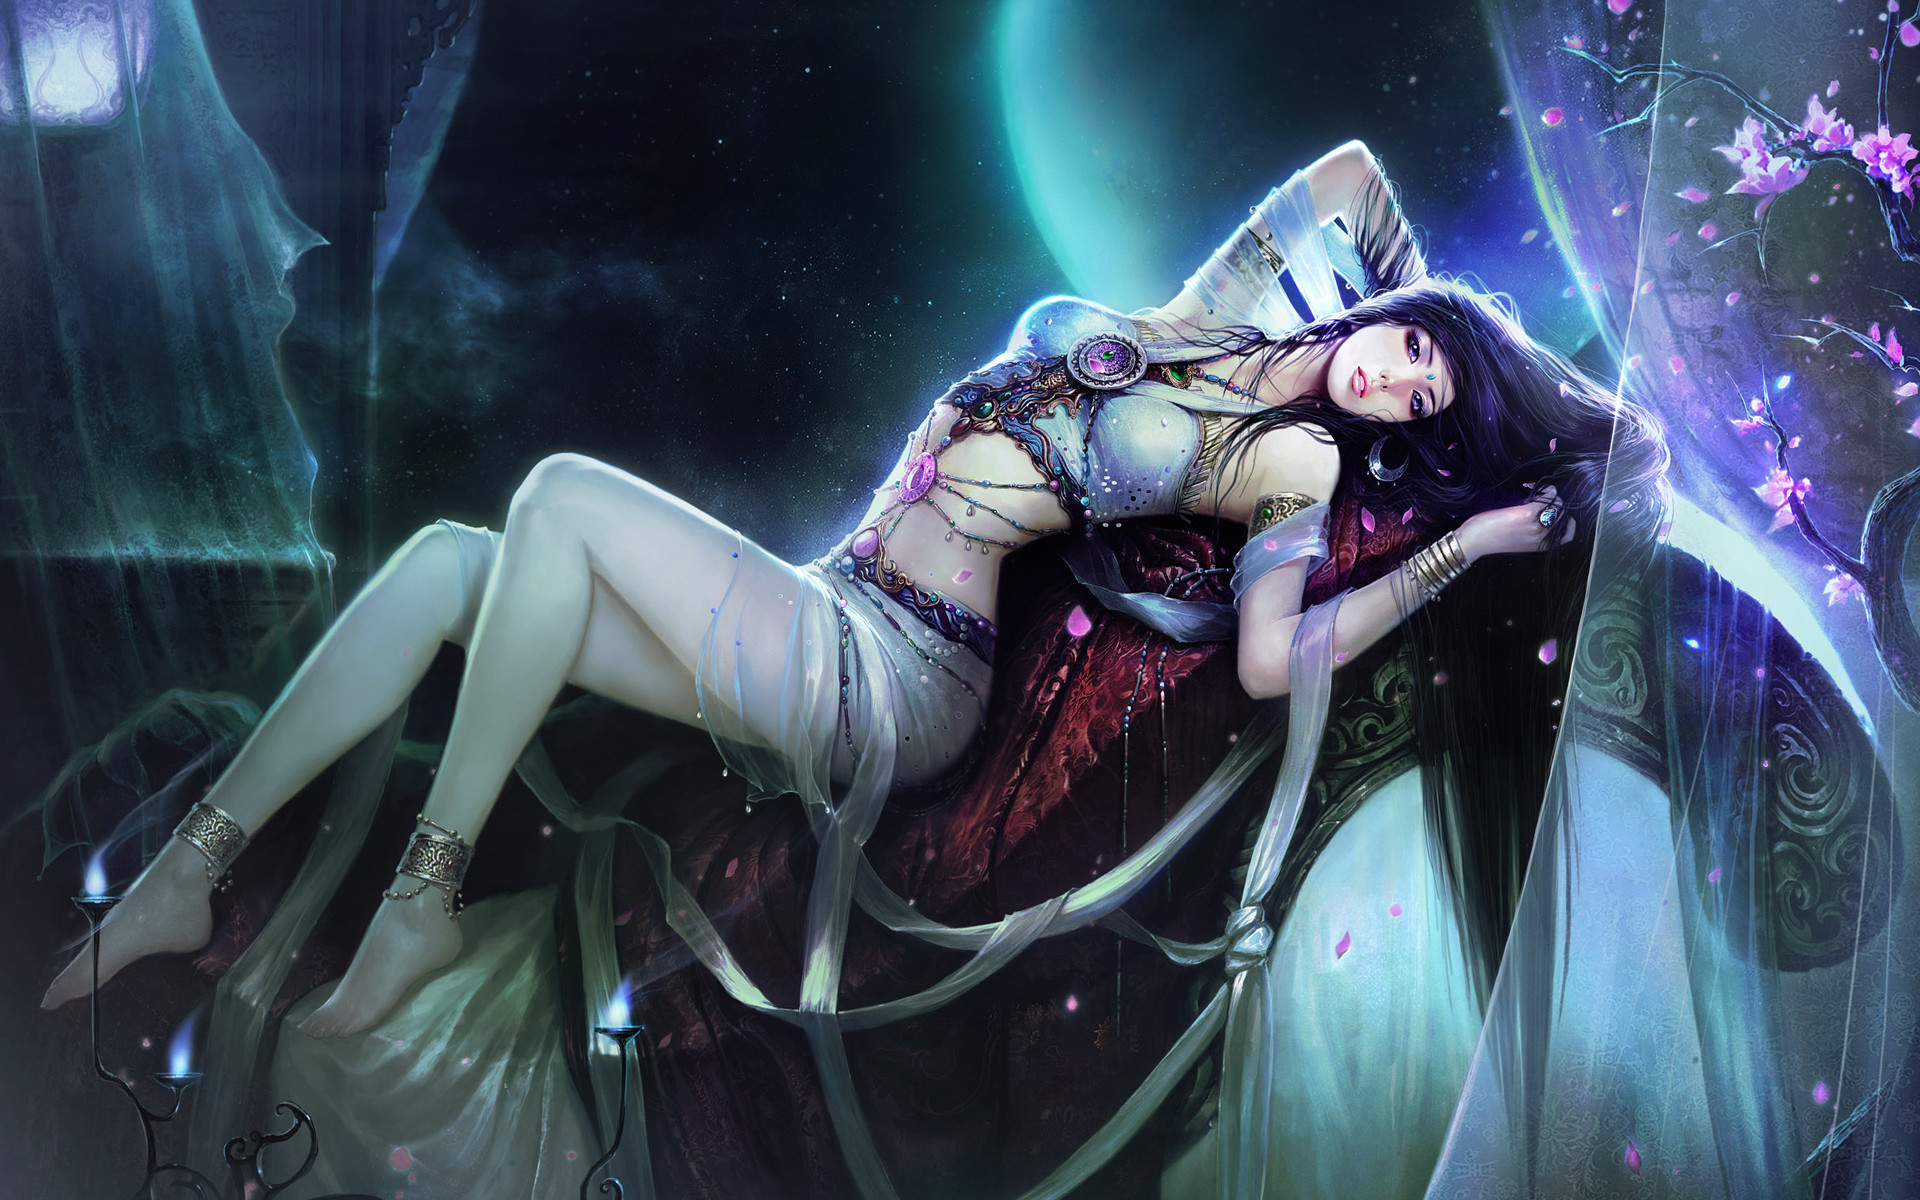 Anime Girls Hd Wallpapers And Backgrounds - Beautiful Fantasy Girl Hd , HD Wallpaper & Backgrounds